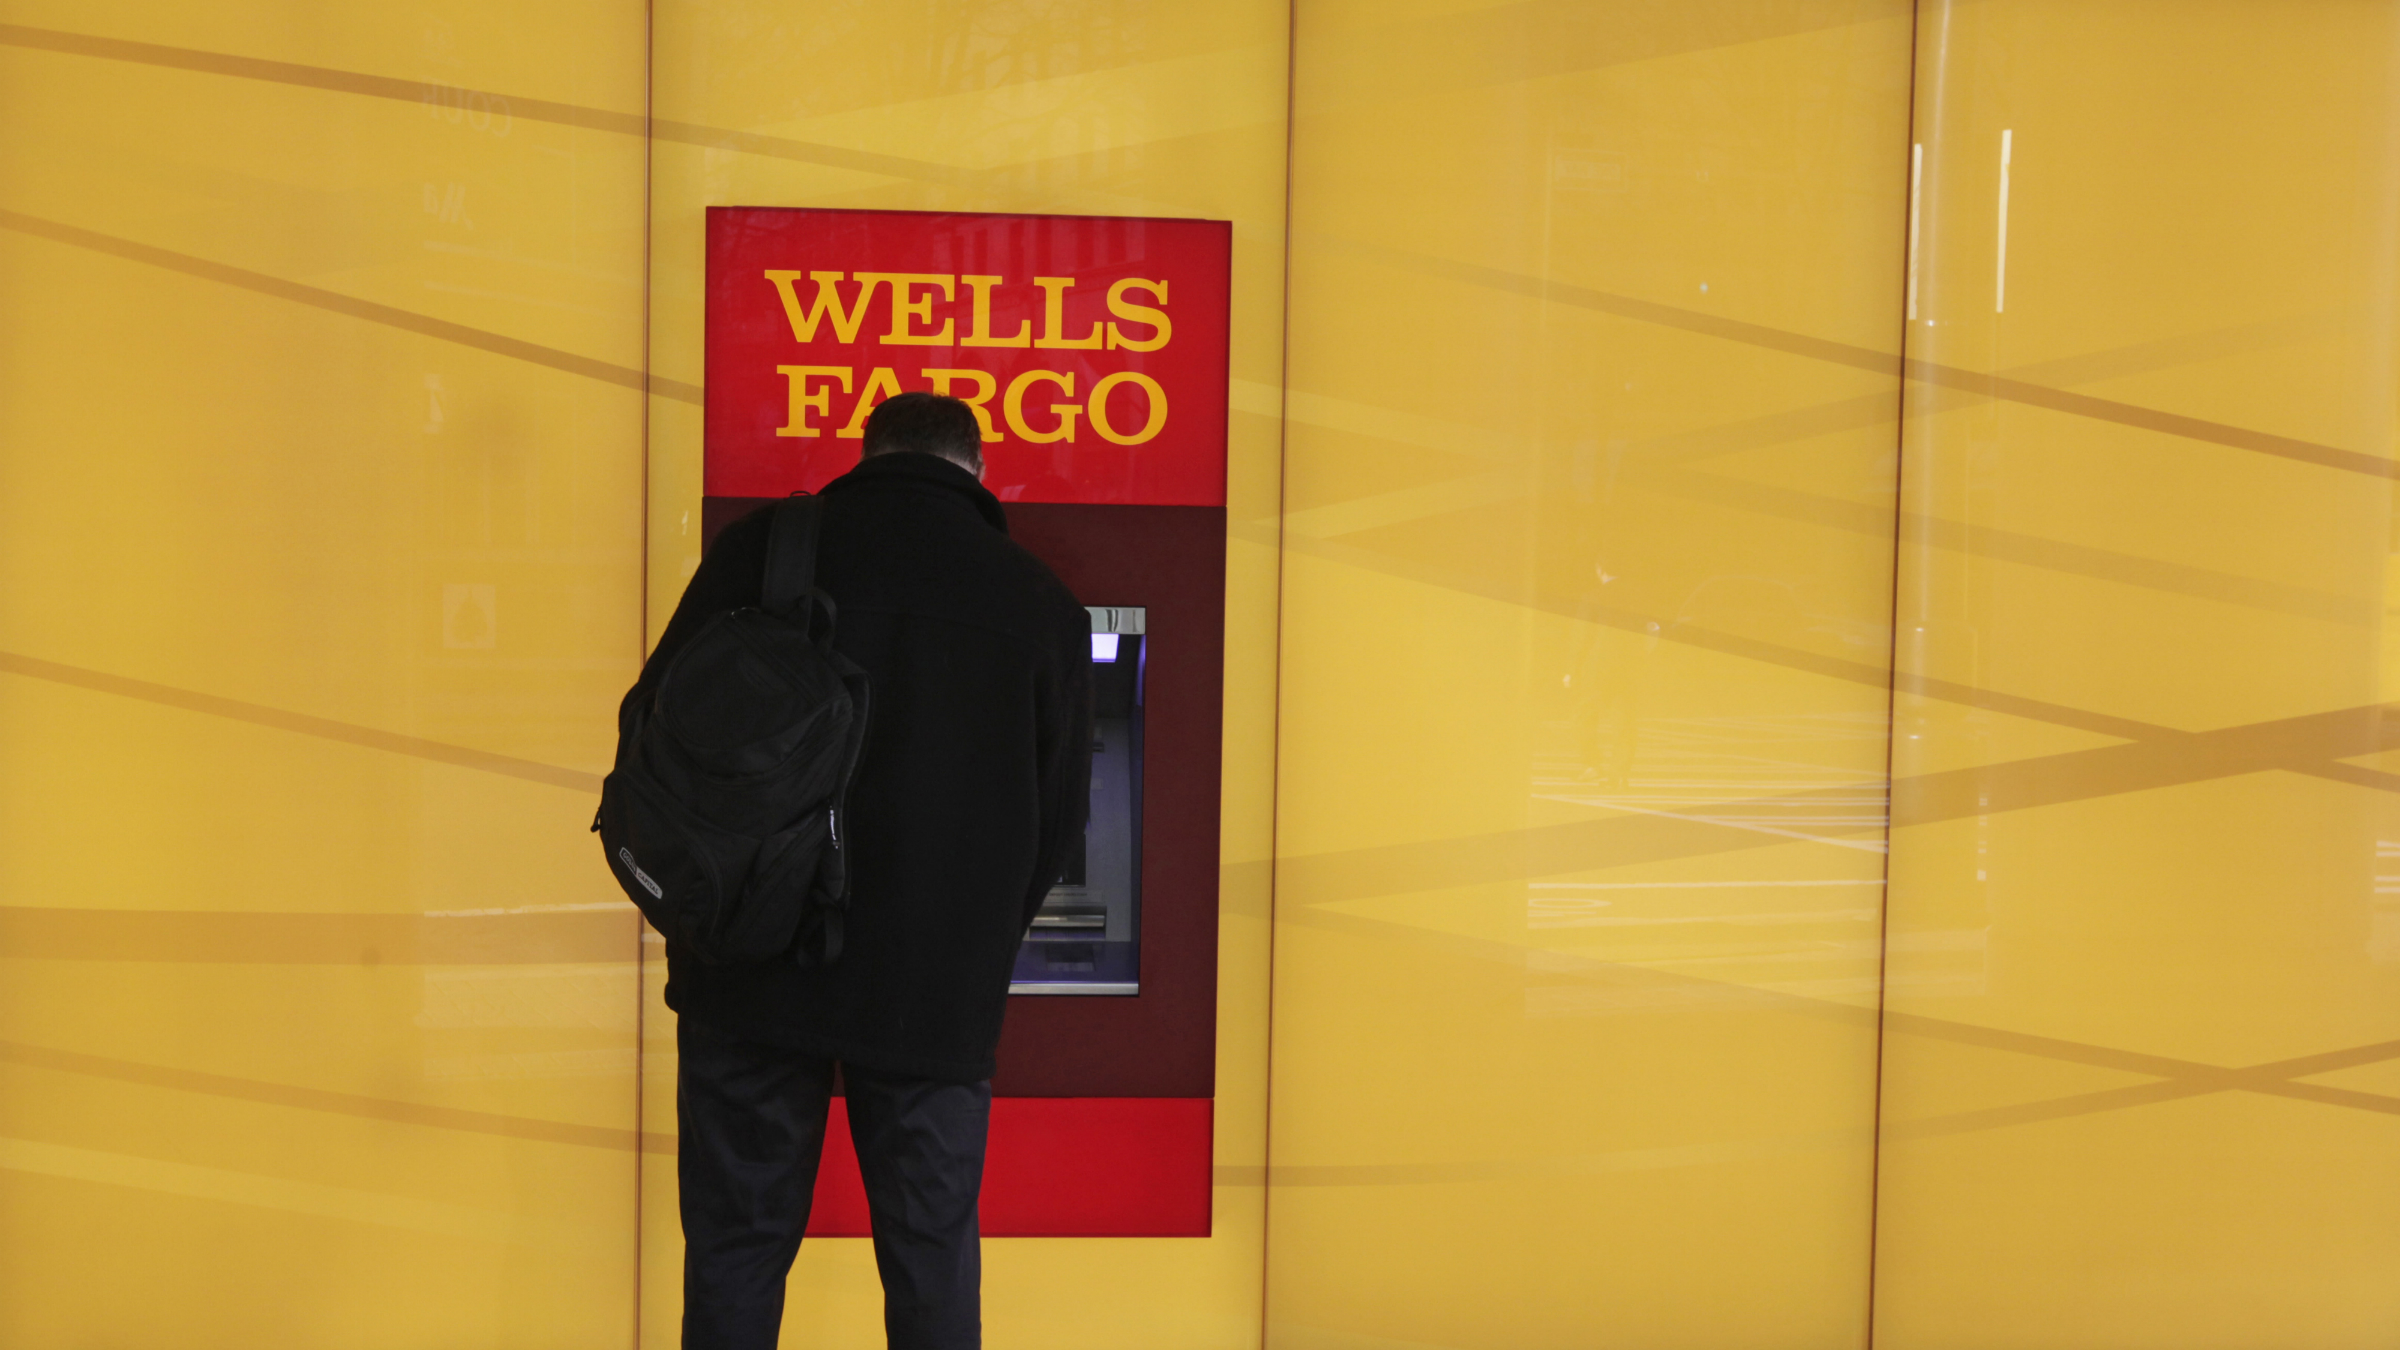 Wells Fargo now originates one in every four US home loans.